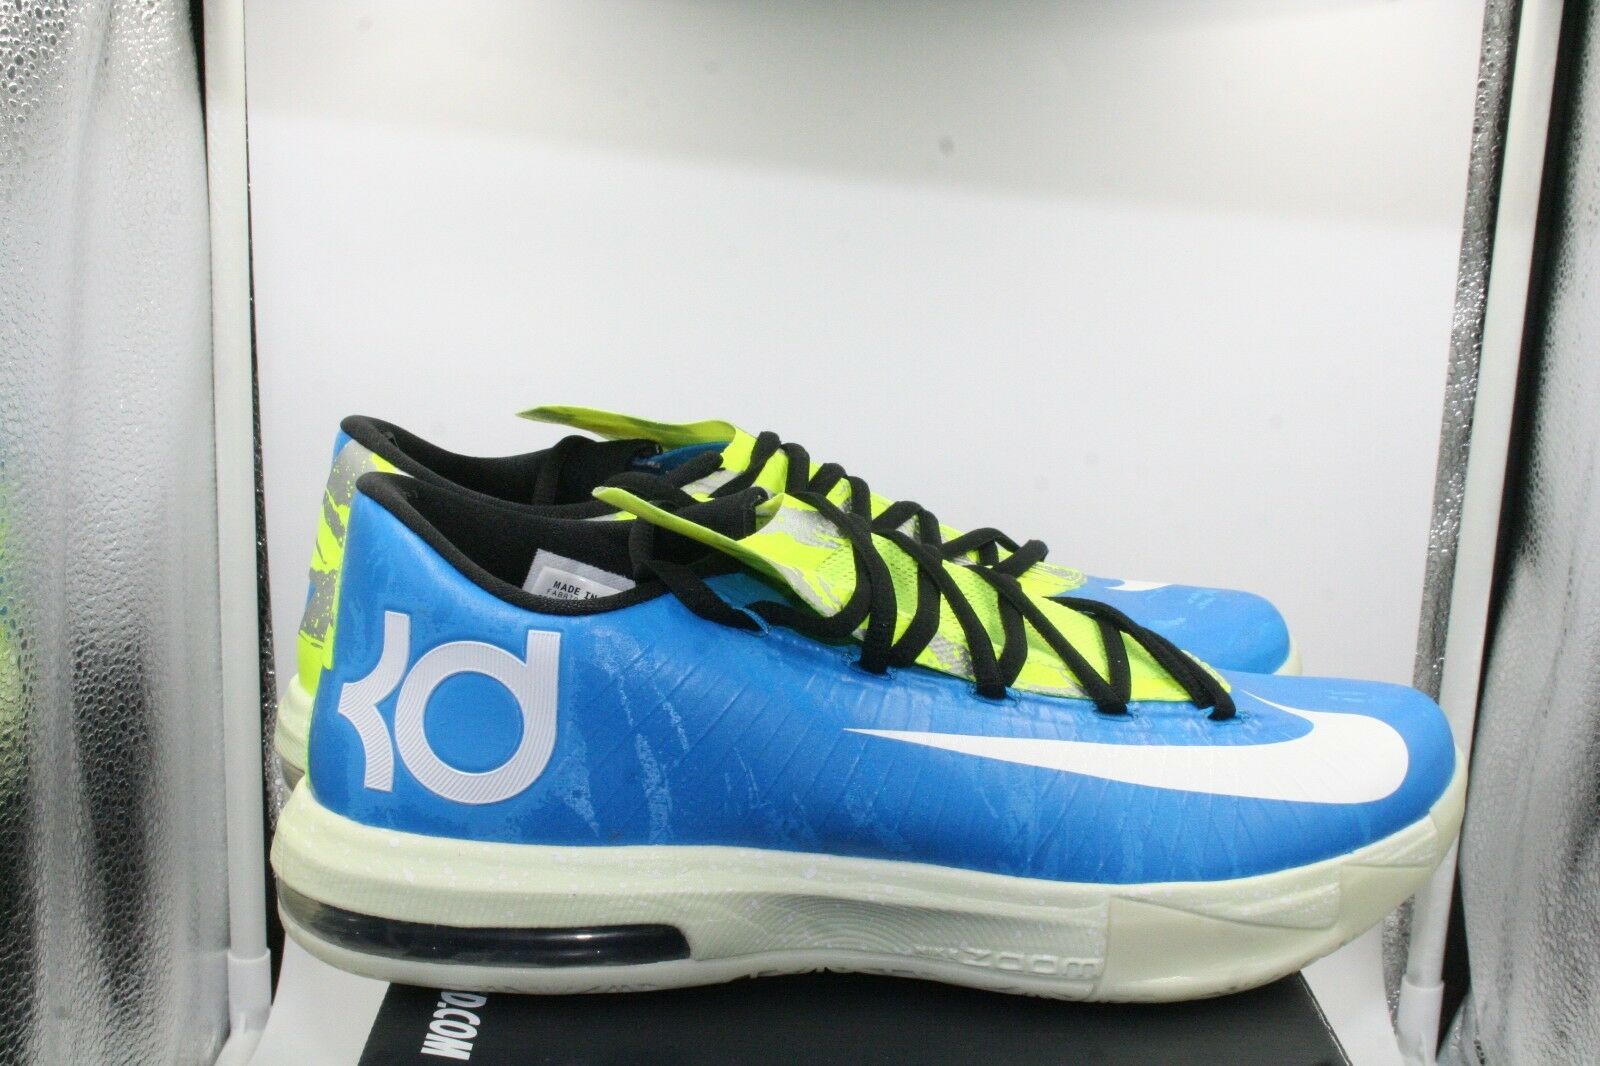 Nike kd id vi (6) sz ds sprite, golden state warriors.